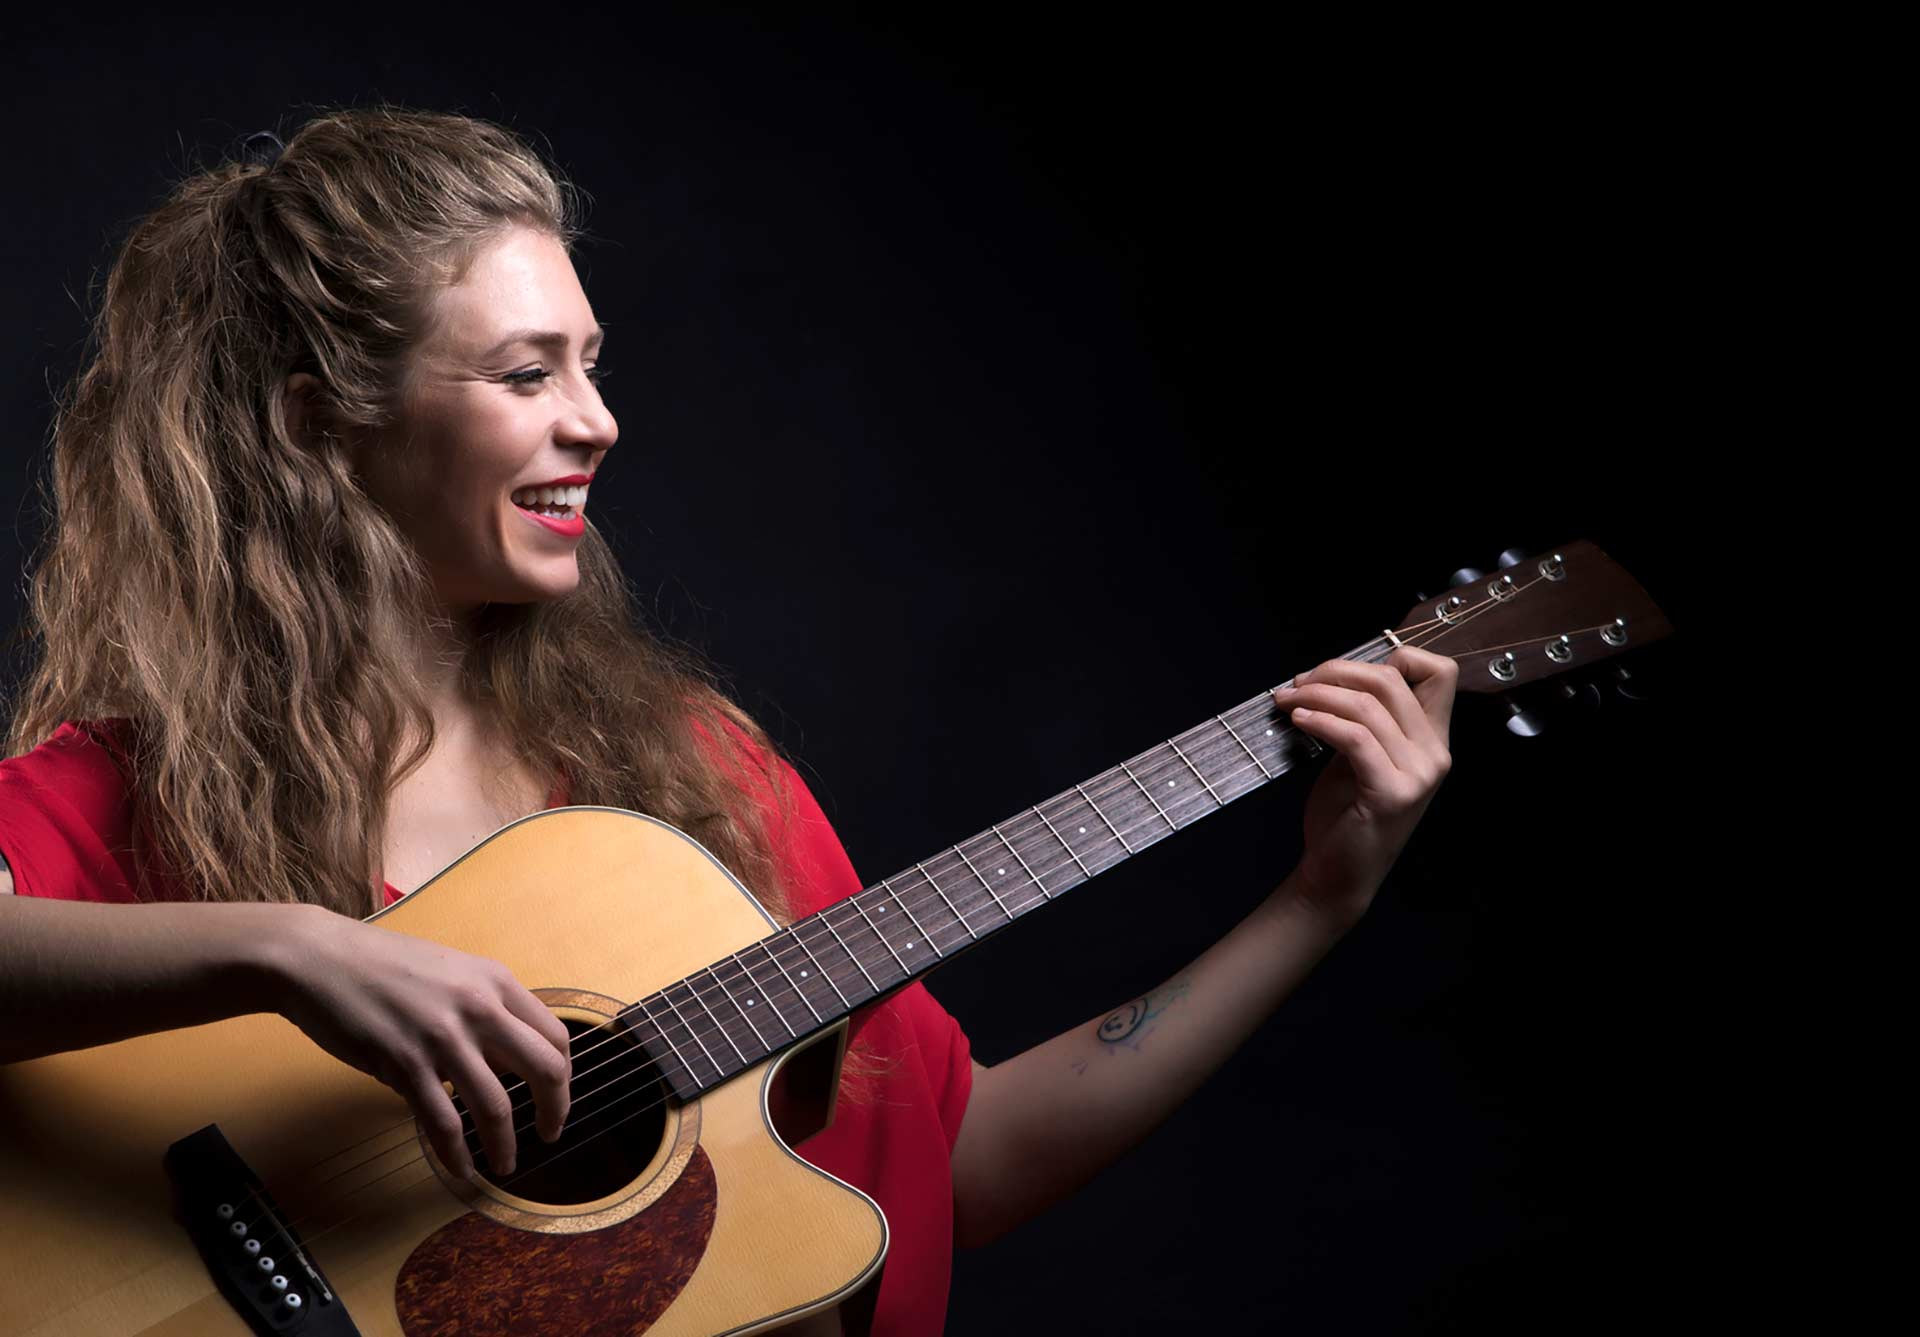 Beautiful lady playing the guitar